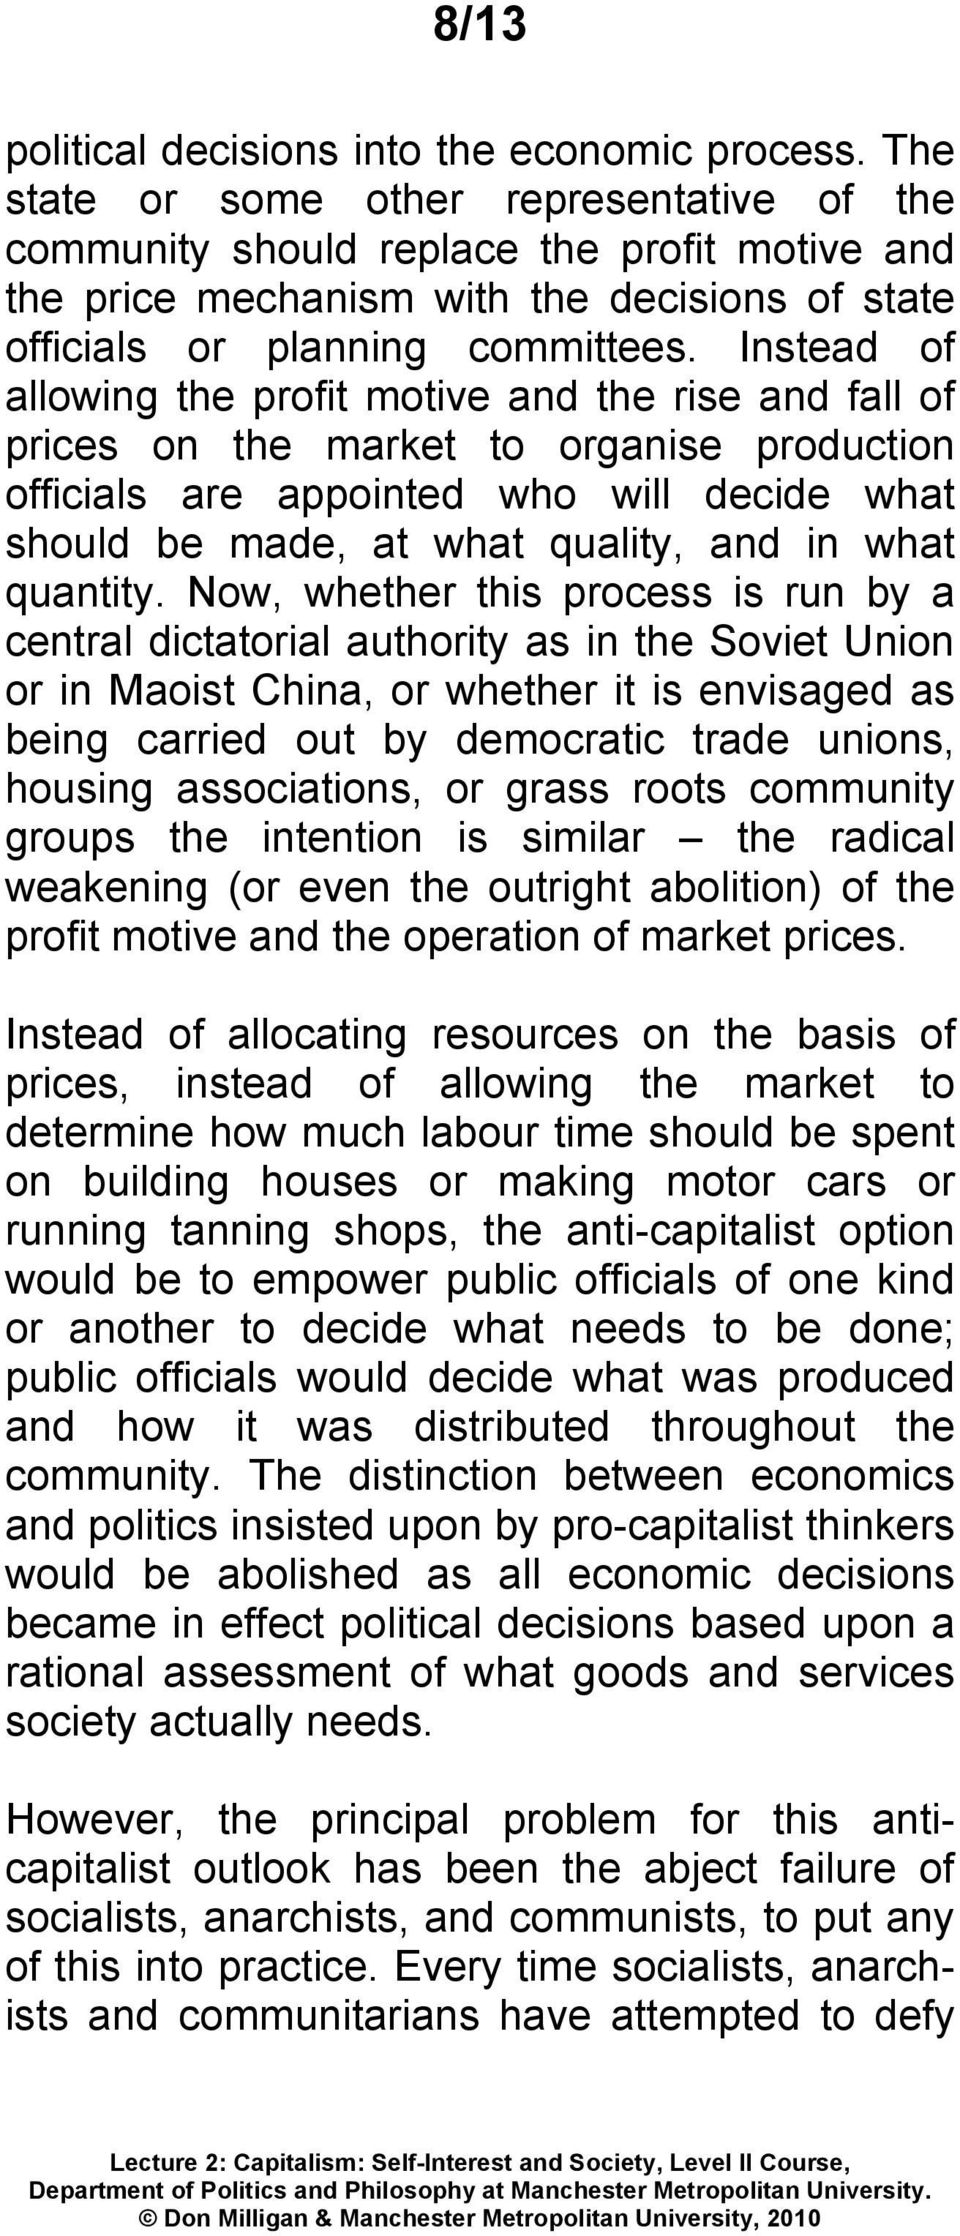 Instead of allowing the profit motive and the rise and fall of prices on the market to organise production officials are appointed who will decide what should be made, at what quality, and in what